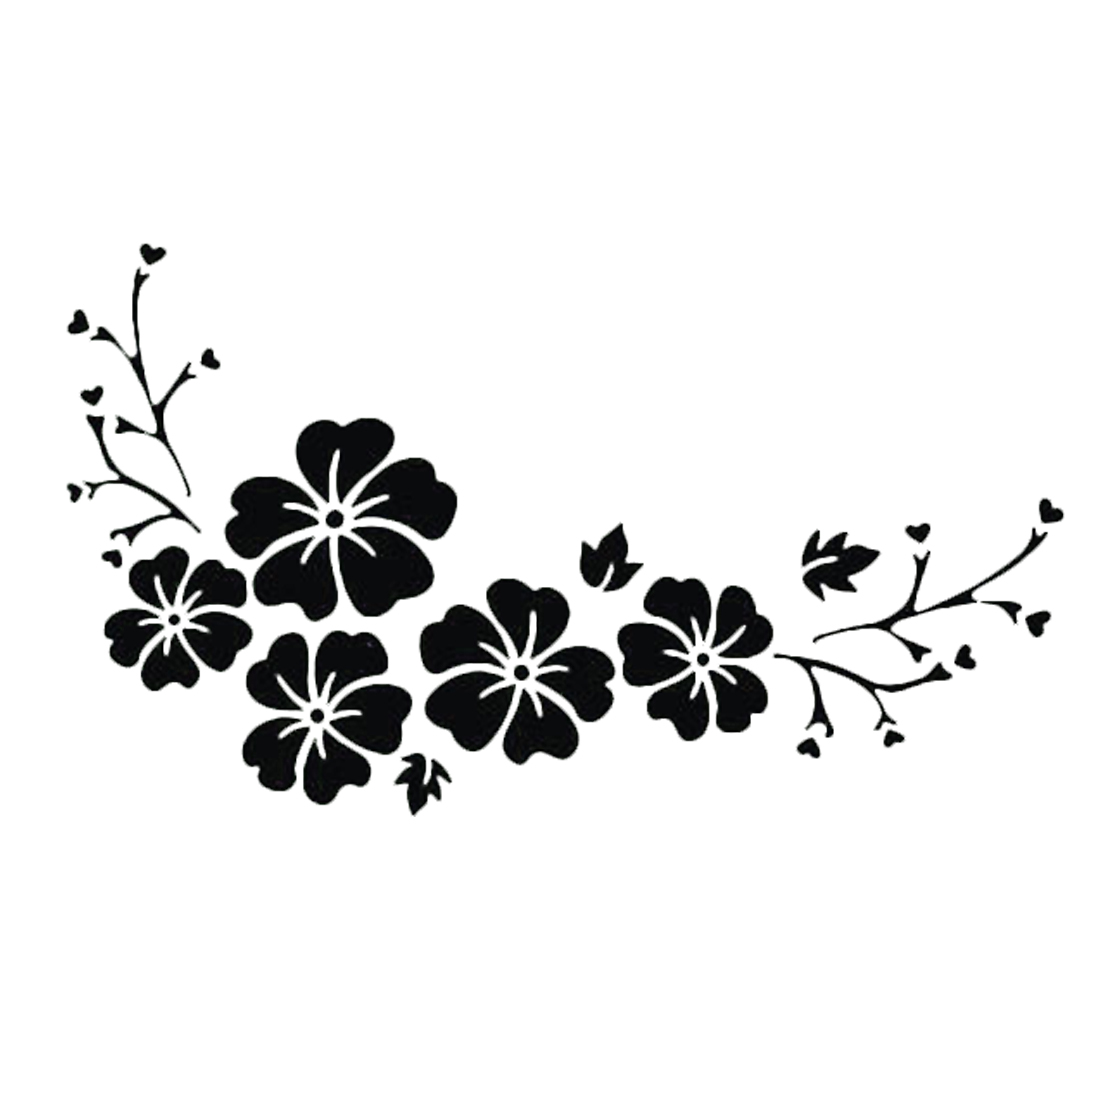 DAWASARU Waterproof Sticker Engraving Flower Pattern Car Sticker Delicate Decal Car Window Wall Bumper Decal Custom 15*7 CM